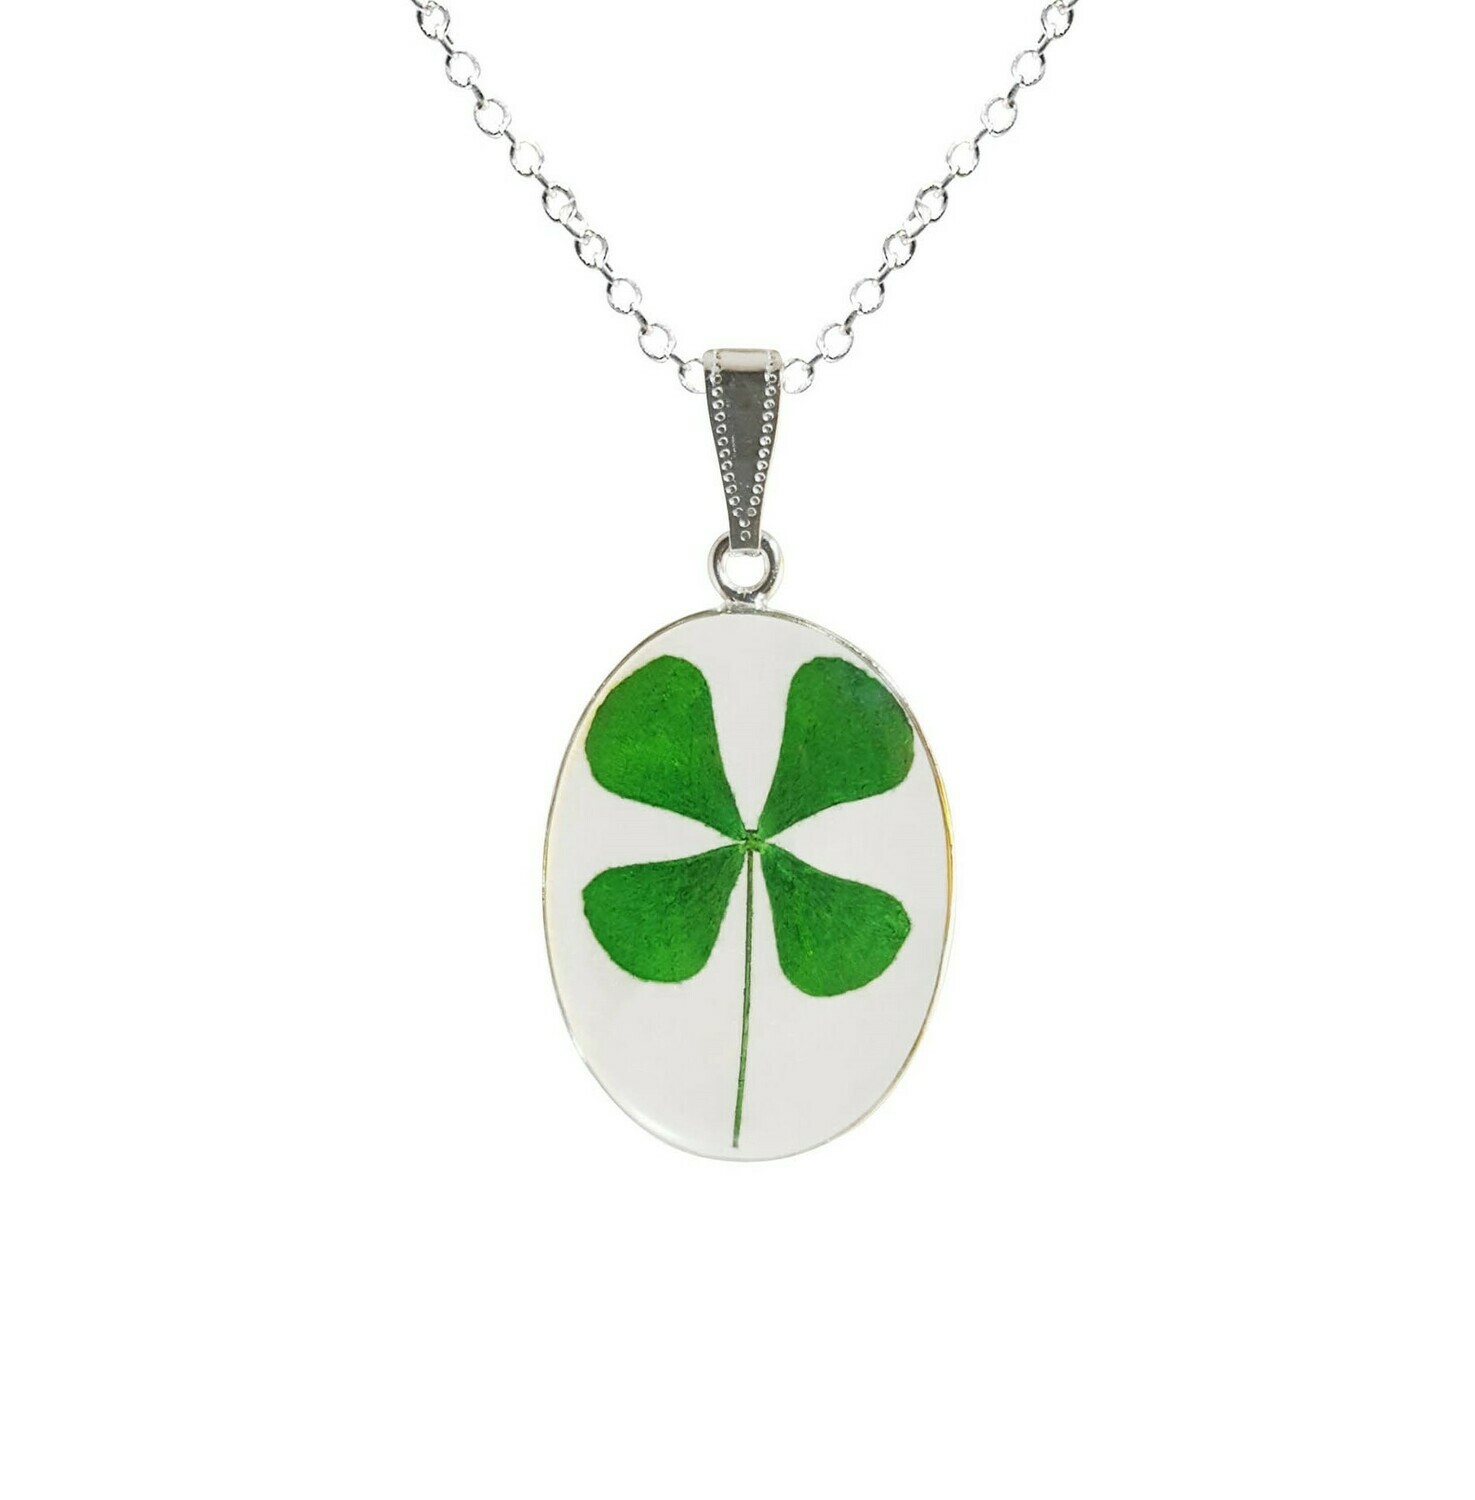 Clover Necklace, Medium Oval, Transparent